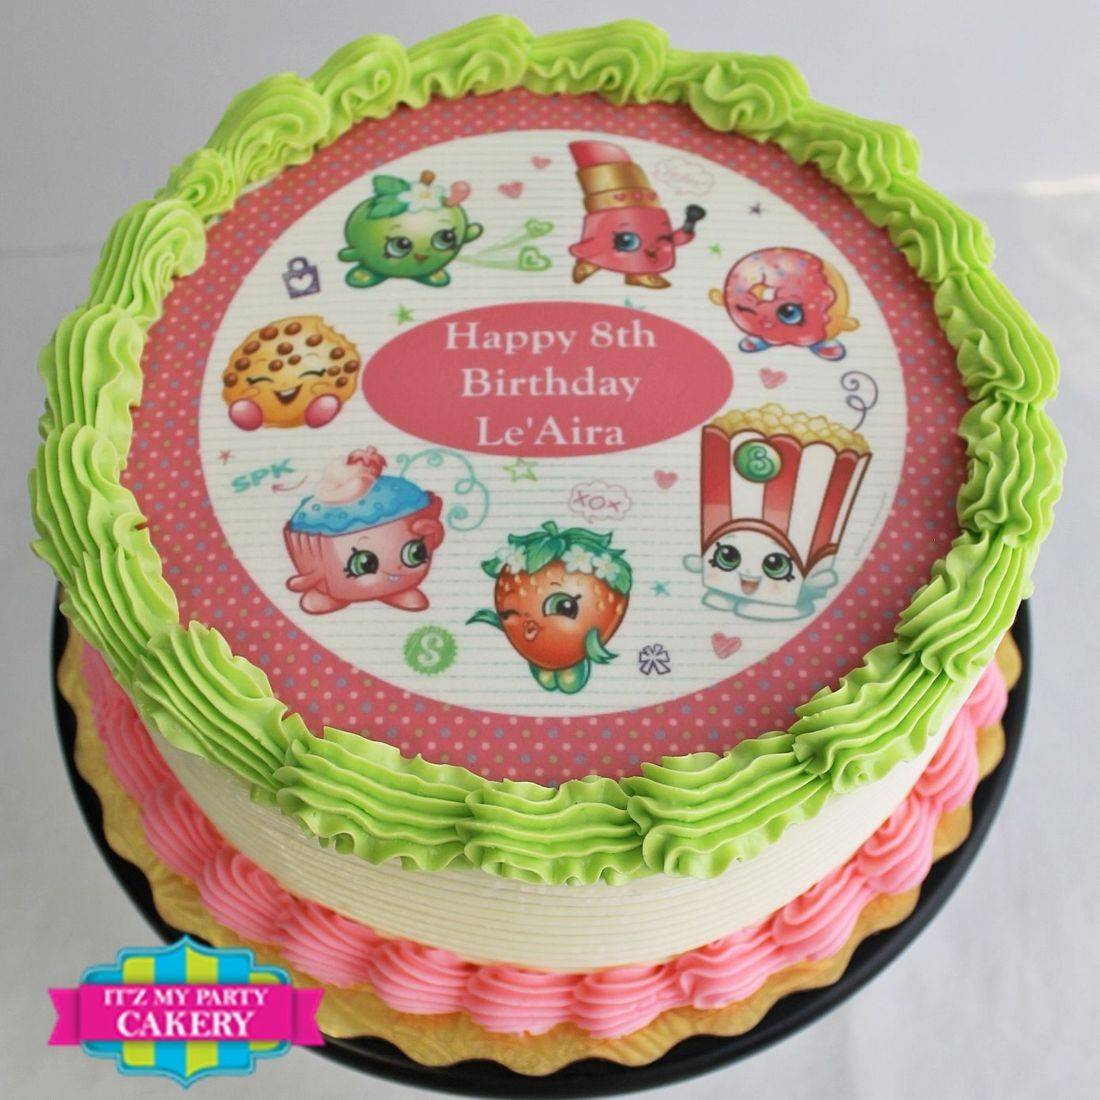 Edible Image Buttercream Cake, Photo Cake